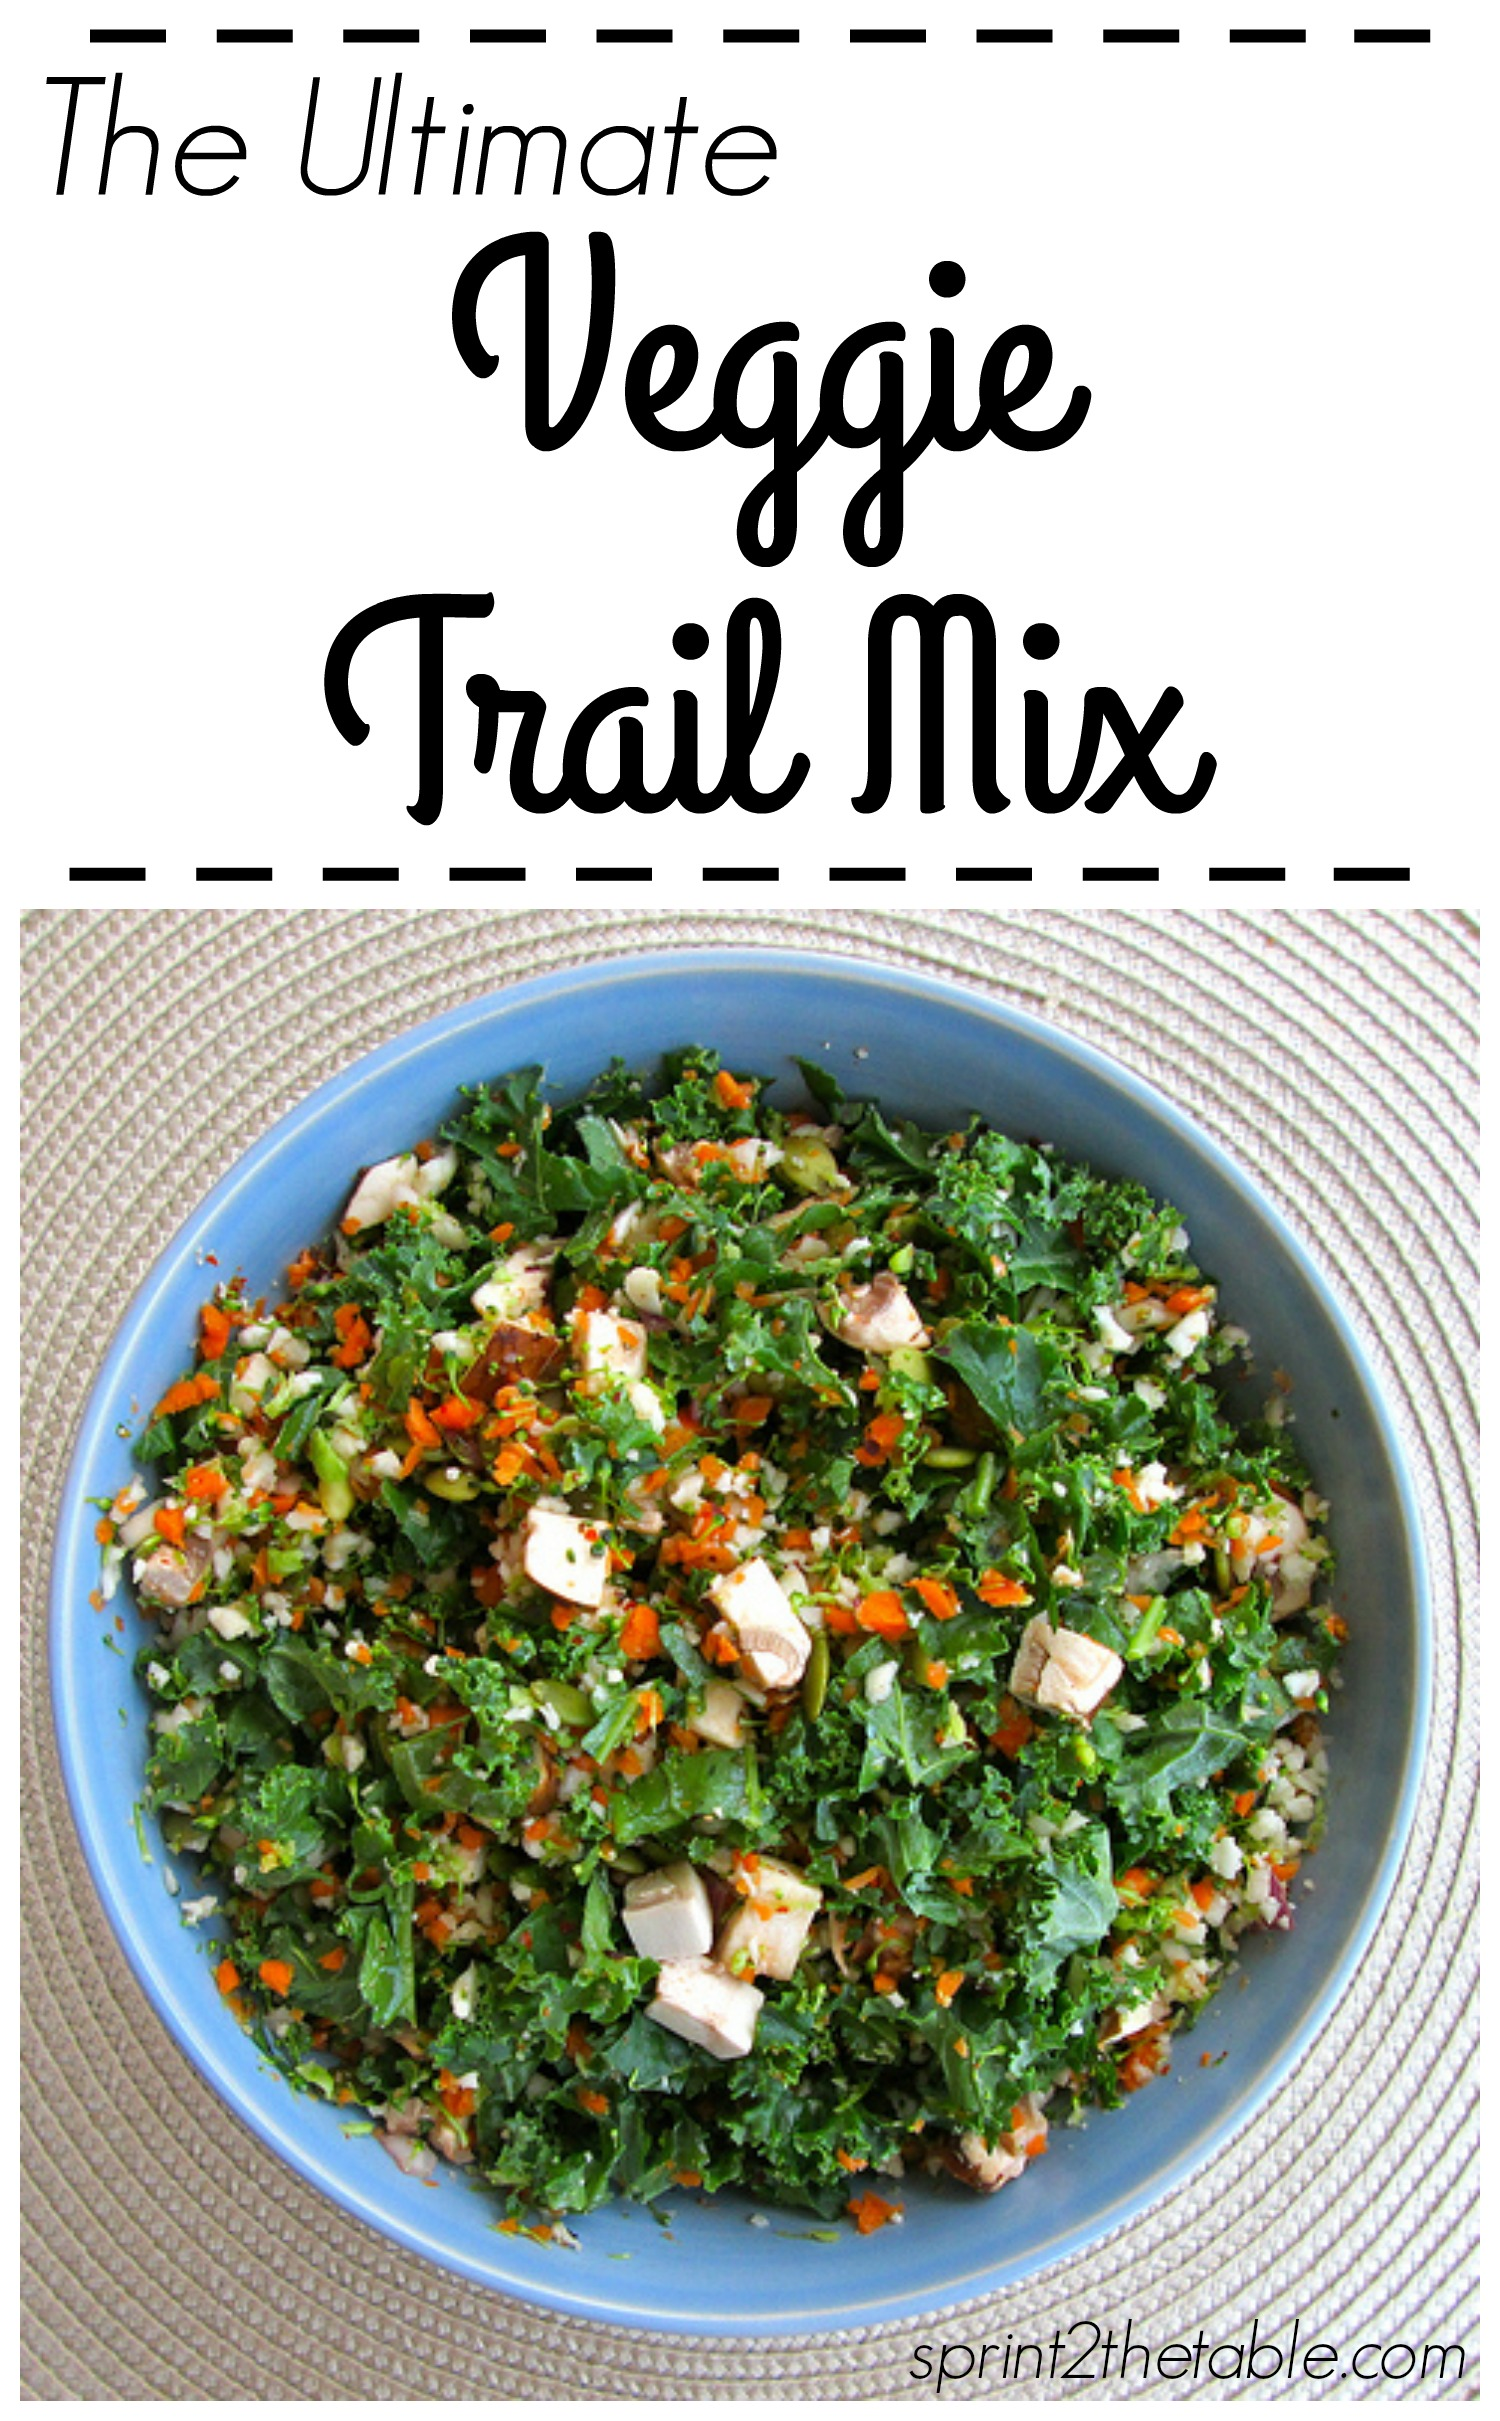 The Ultimate Veggie Trail Mix - this might be the healthiest thing you could put in your mouth!